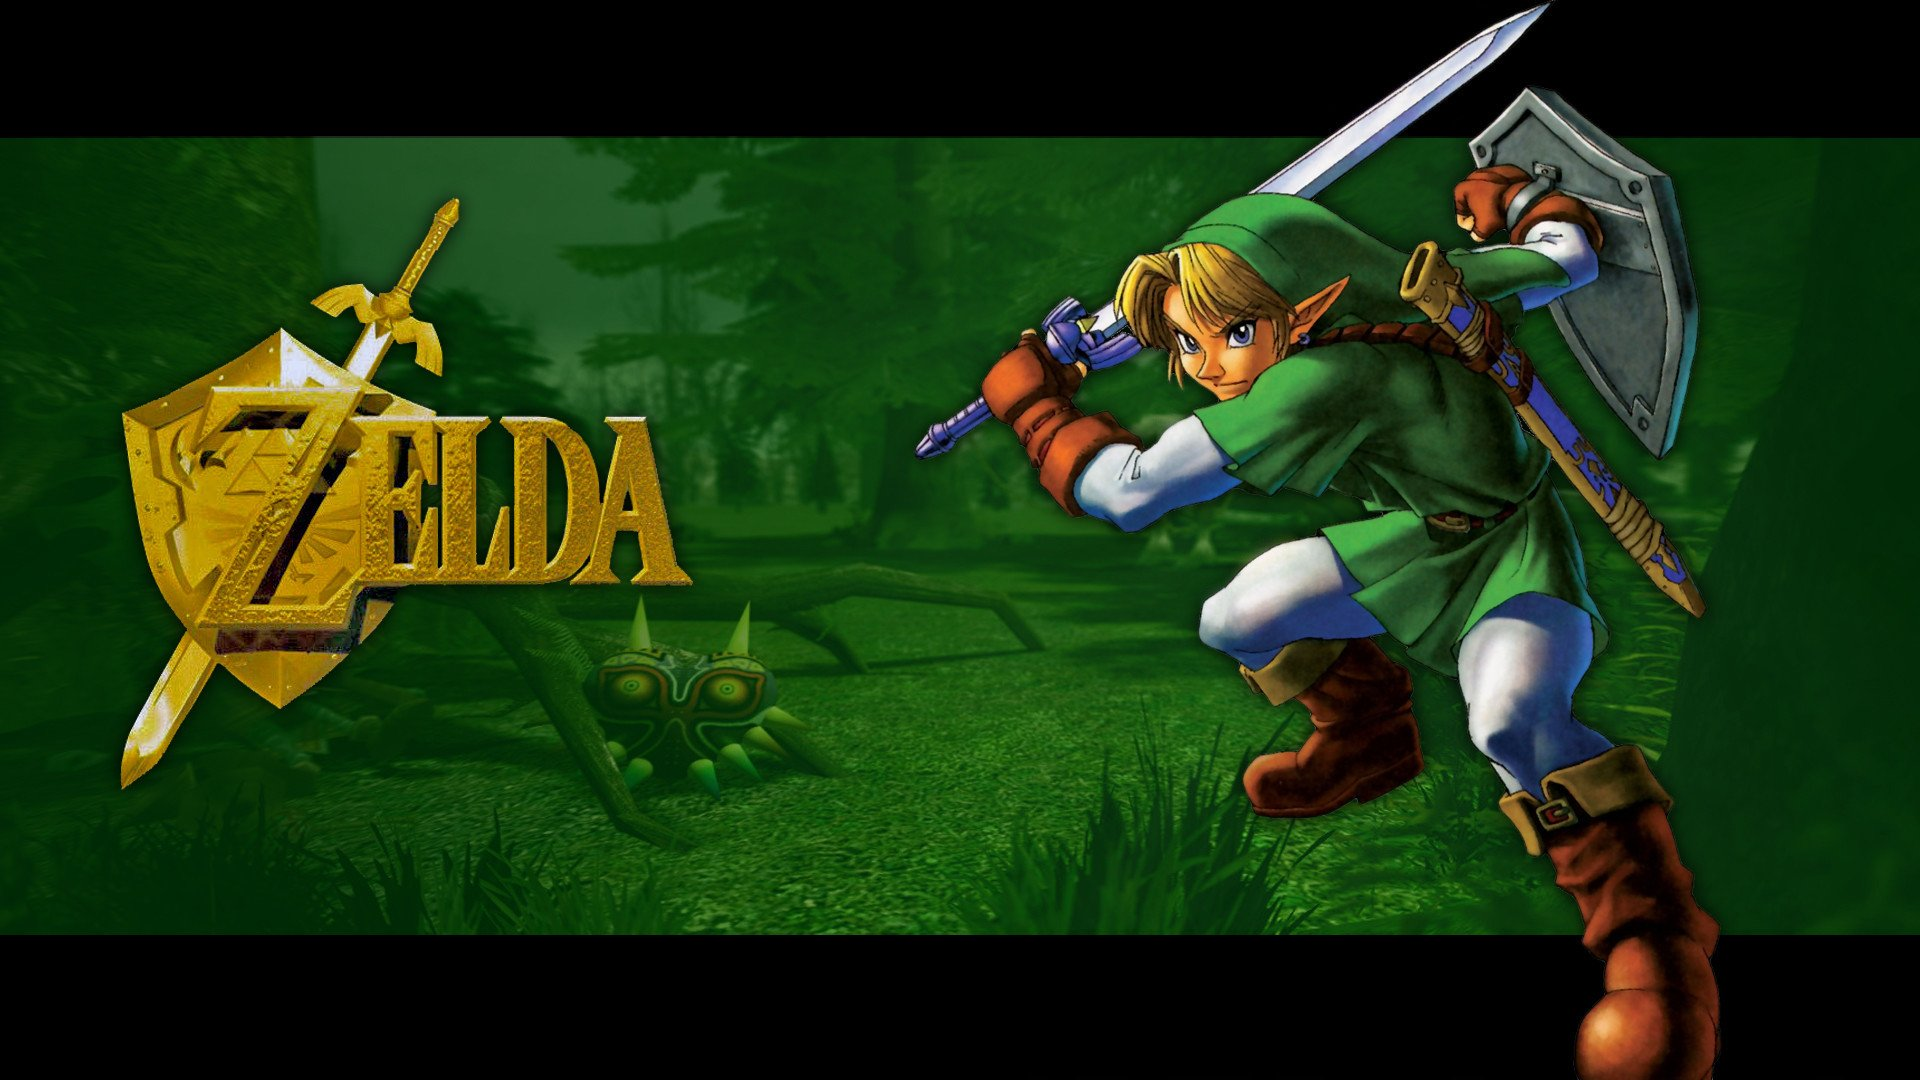 The Legend Of Zelda Wallpaper Hd 17183 Wallpaper Wallpaper hd 1920x1080